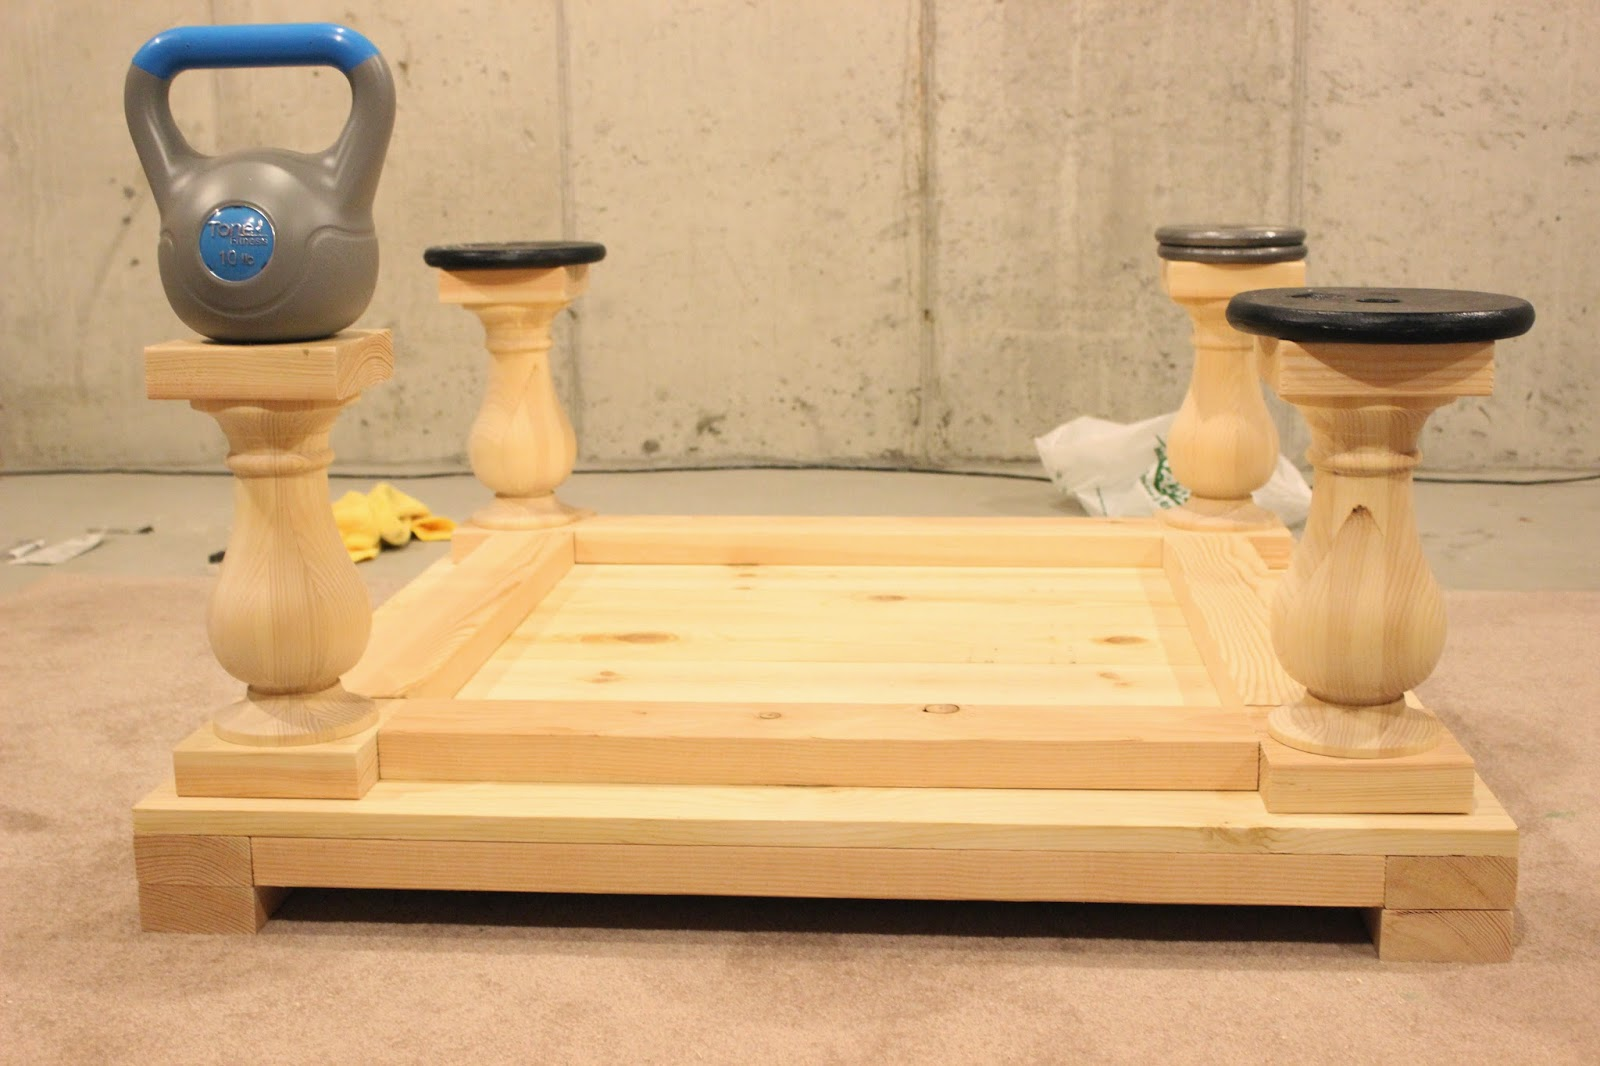 Set The Legs In 1 From Sides And Ends Use Wood Glue To Place We Then Put Weights On Top Keep Things Moving